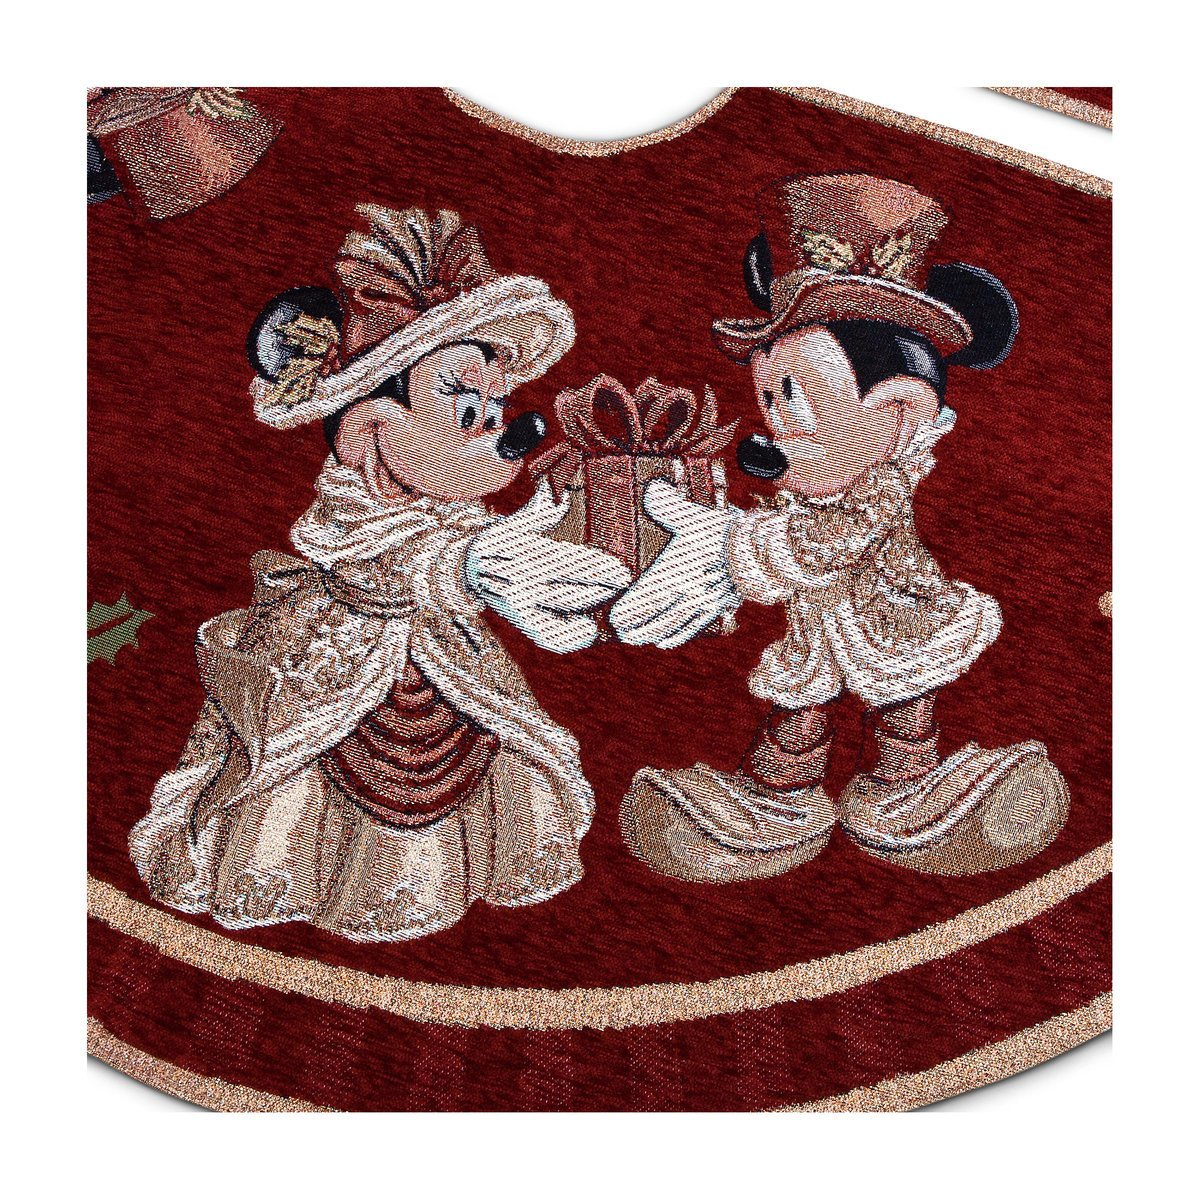 Disney Park Mickey Minnie Mouse Victorian Tapestry Christmas Holiday Tree Skirt by Disney Parks (Image #4)